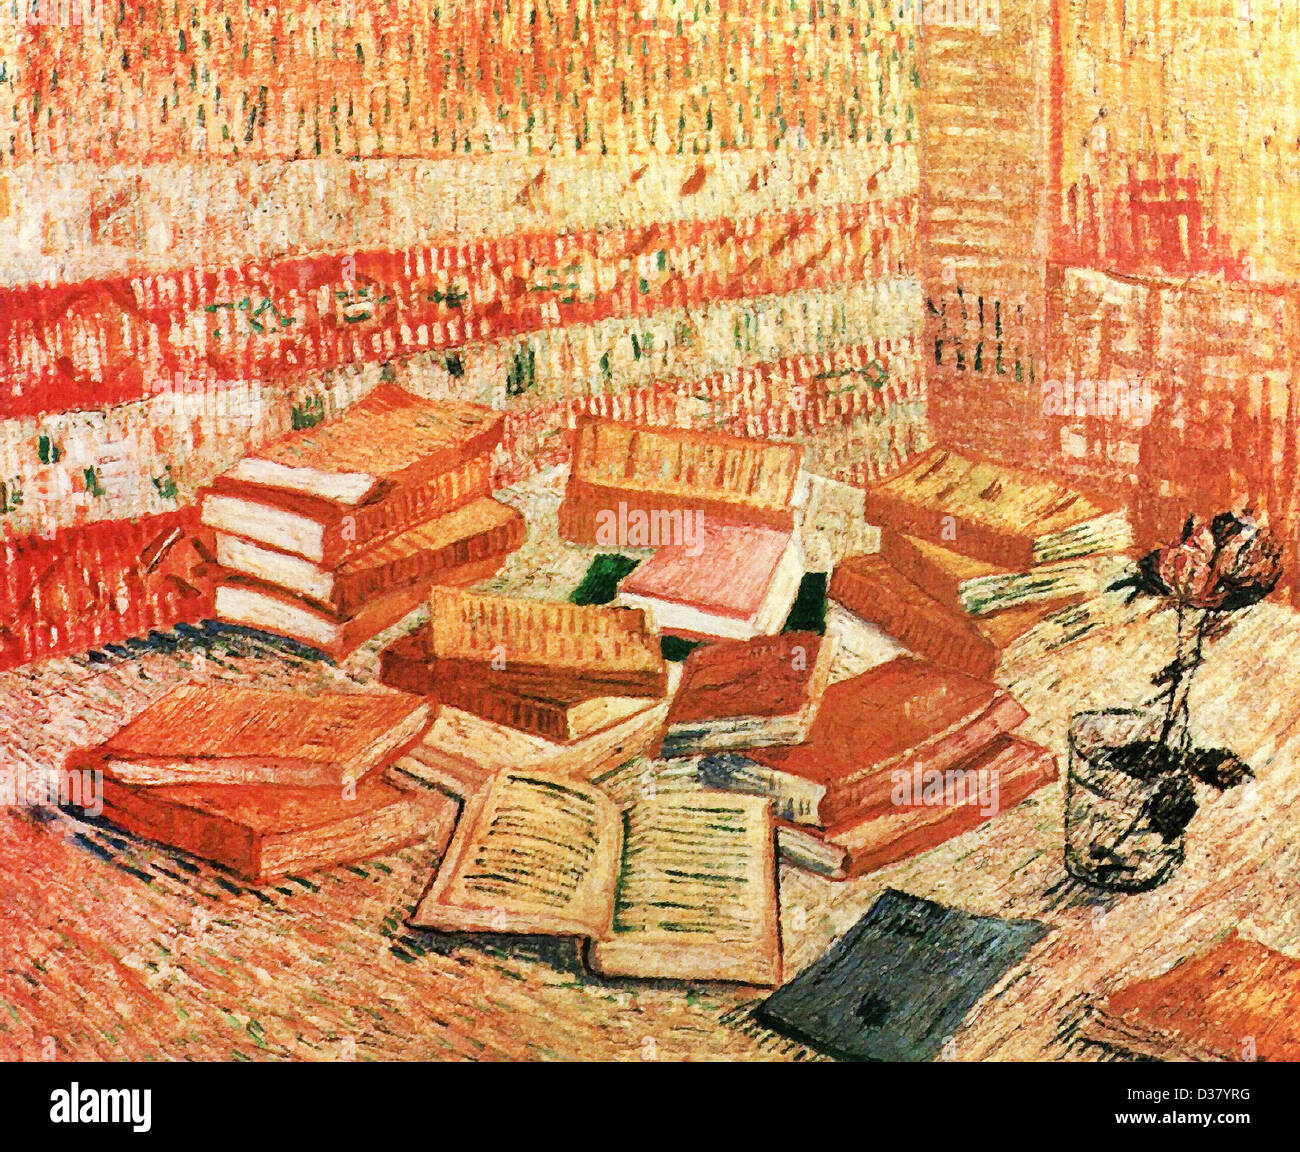 Vincent van Gogh, Still Life - French Novels and Rose. 1888. Post-Impressionism. Oil on canvas. Place of Creation: - Stock Image